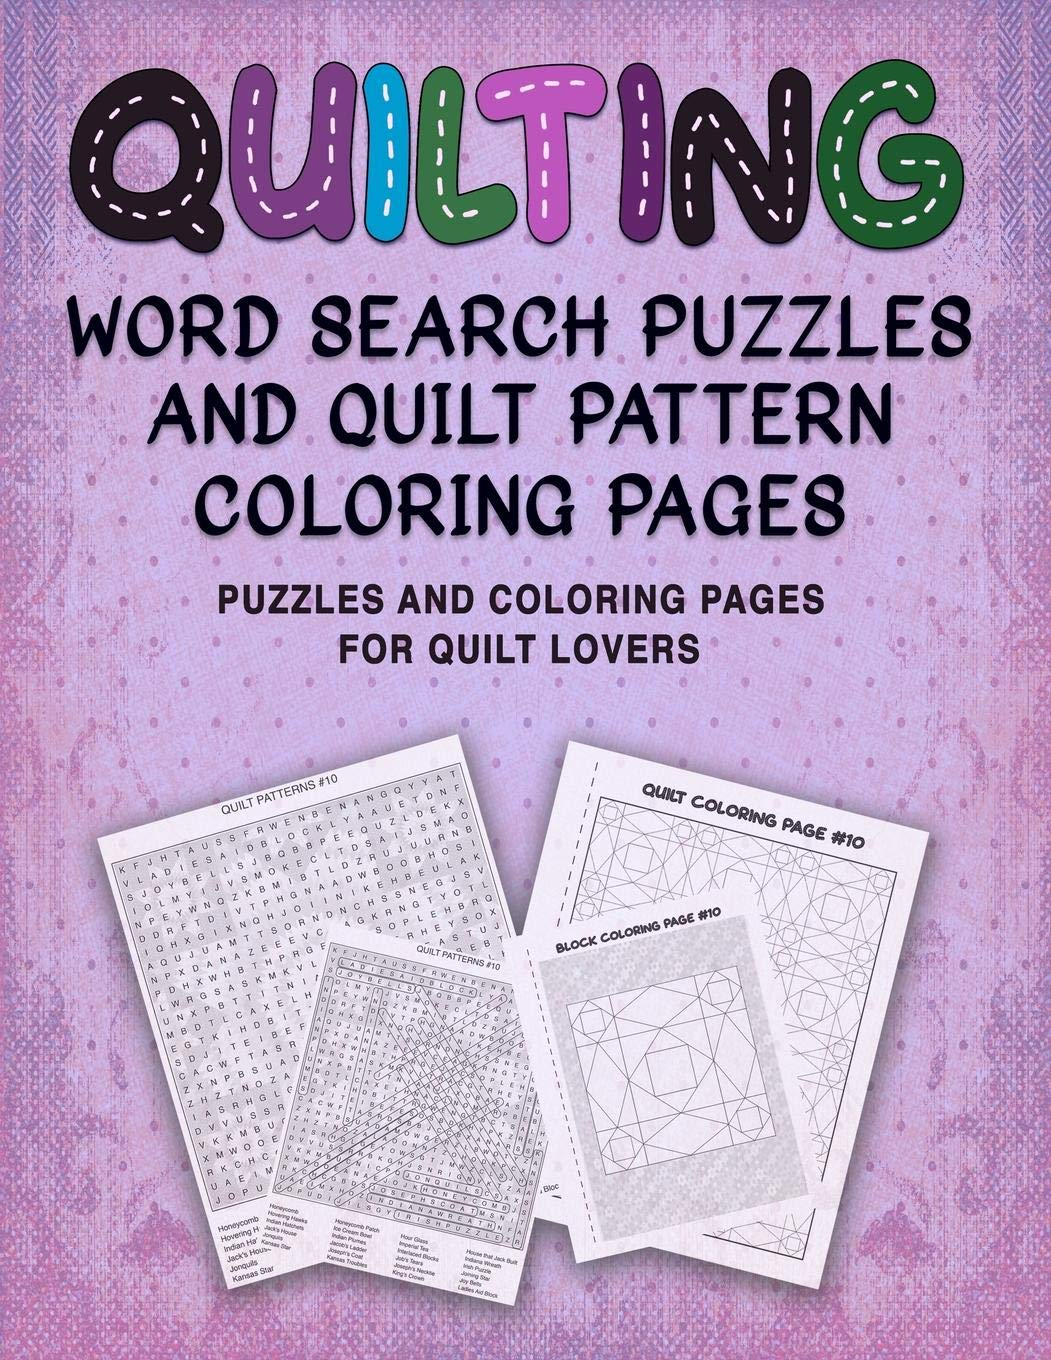 Quilting Word Search Puzzles And Quilt Pattern Coloring Pages Puzzles And Coloring Pages For Quilt Lovers Sloderbeck Vickie 9781081502621 Amazon Com Books